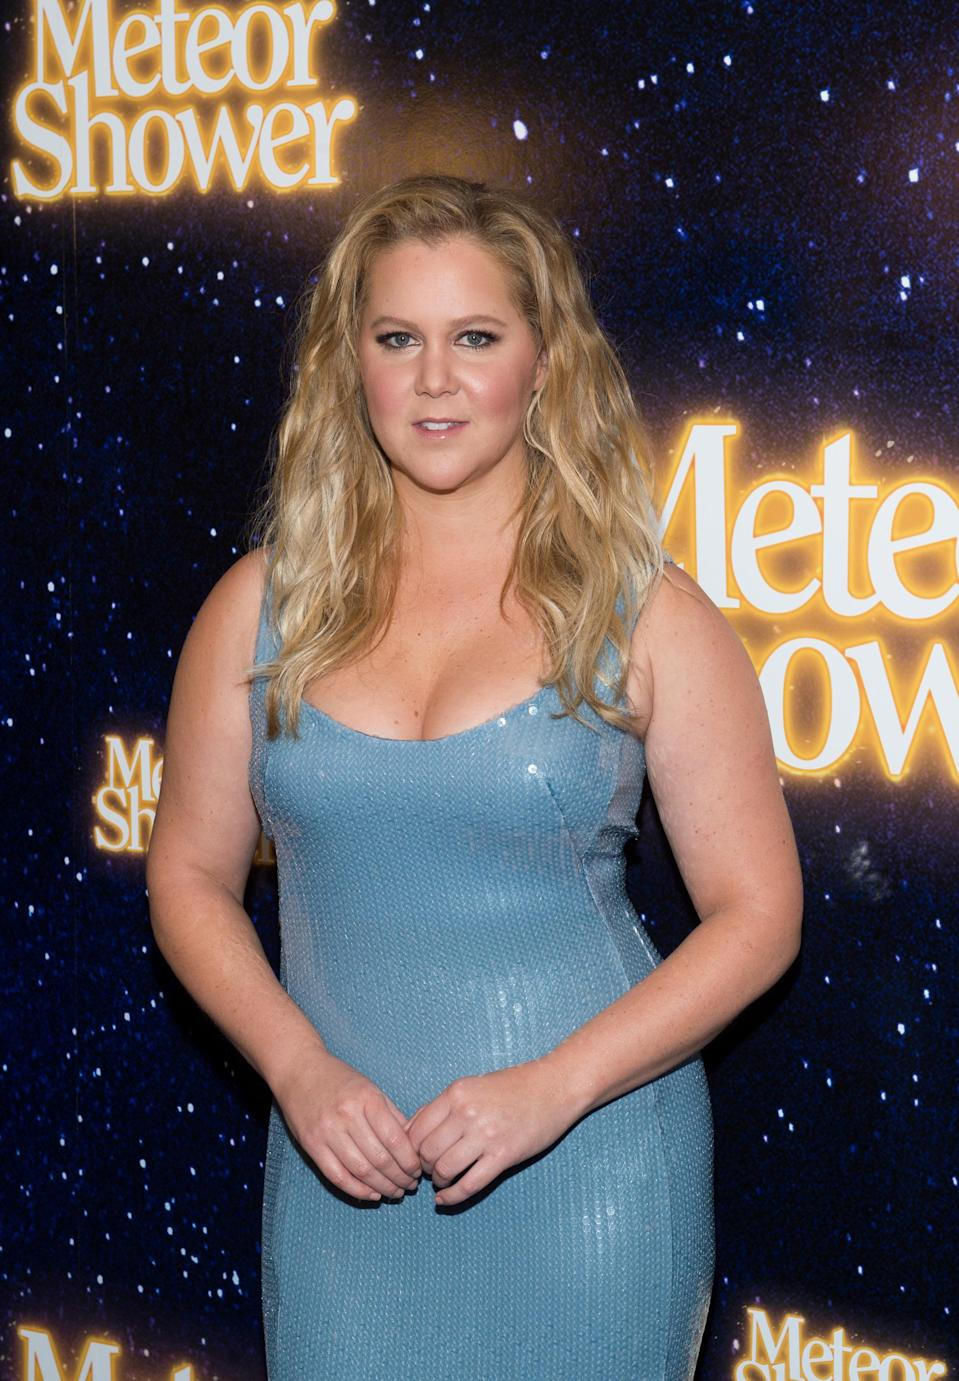 """Amy Schumer's new film """"I Feel Pretty"""" has not been universally well-received. (Photo: Getty Images)"""